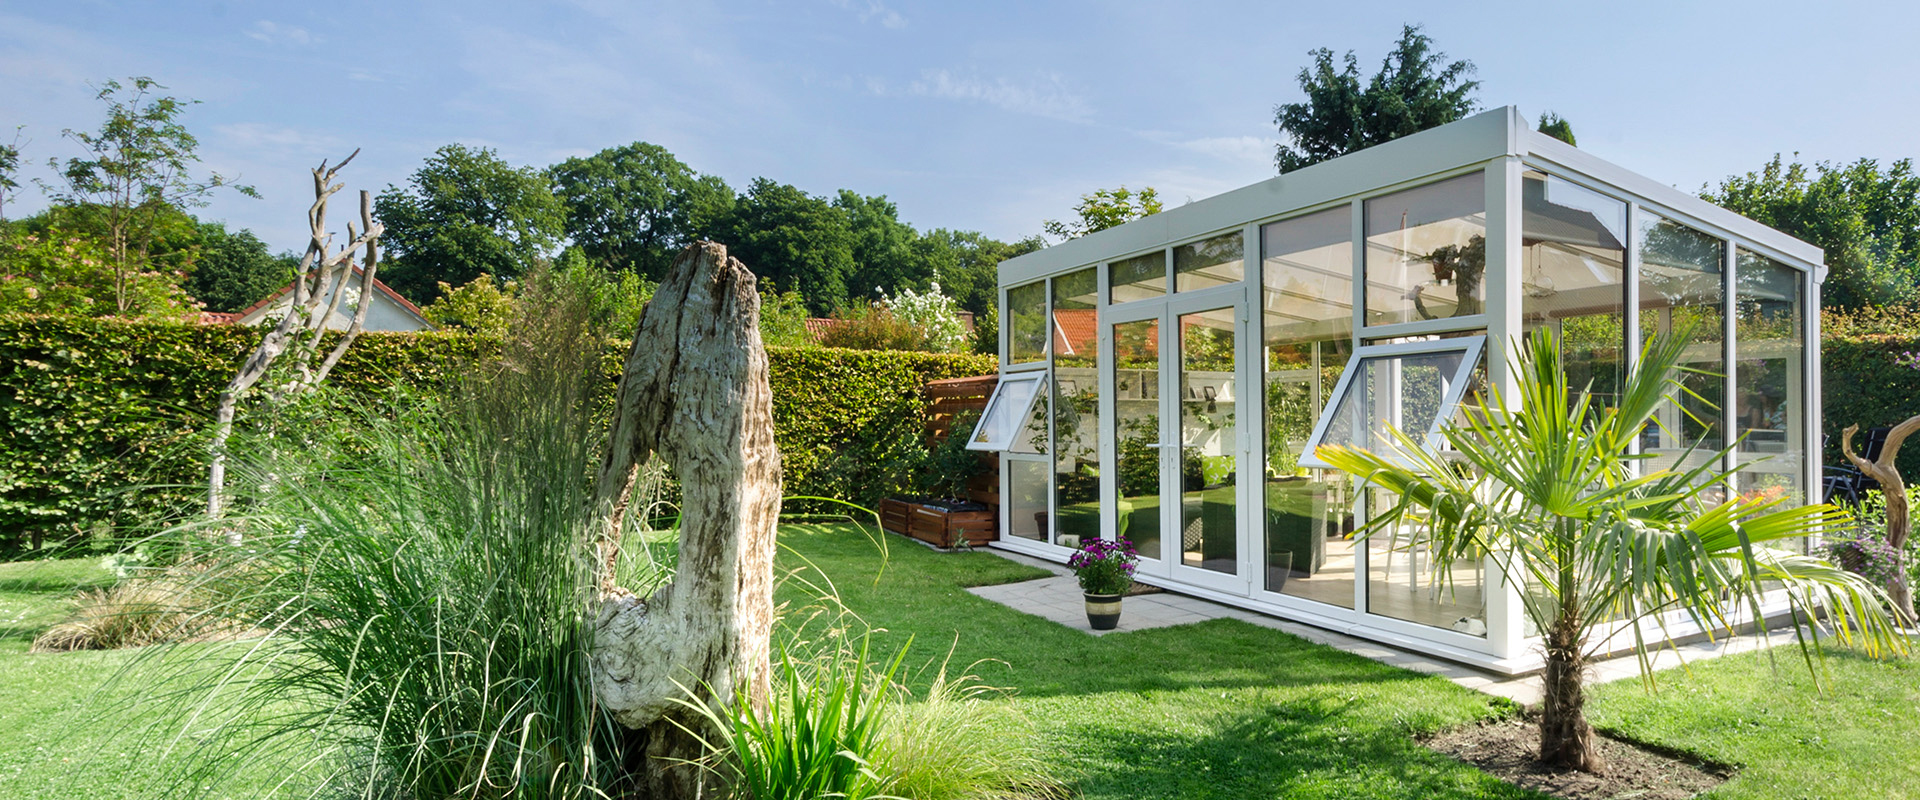 The Modern Contemporary Lines Of The Berkshire Orangerie Offers A Truly  Modern Garden Room With Lots Of Flexibility For Different Uses.